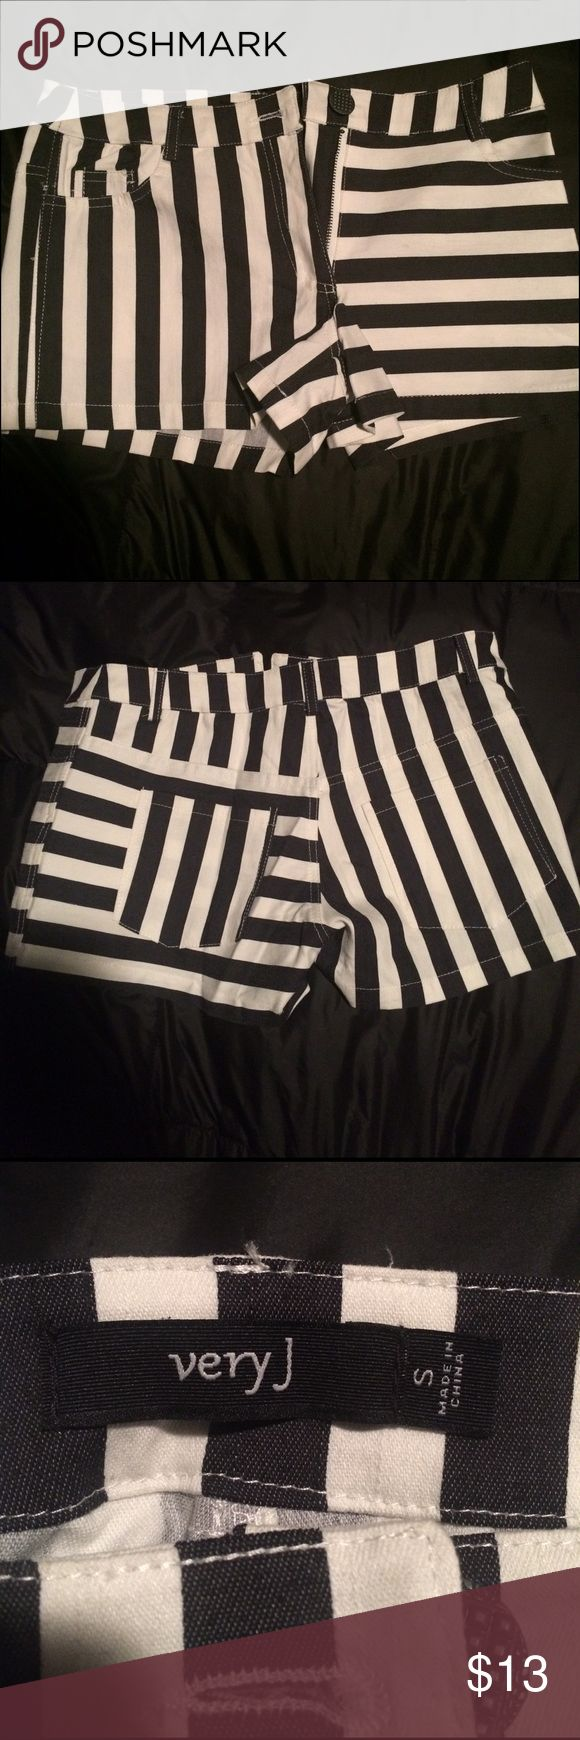 NWOT black and white striped shorts Never been worn, black and white womens' striped shorts. Size small. NWOT. Chic af 🔥 Very J Shorts Jean Shorts